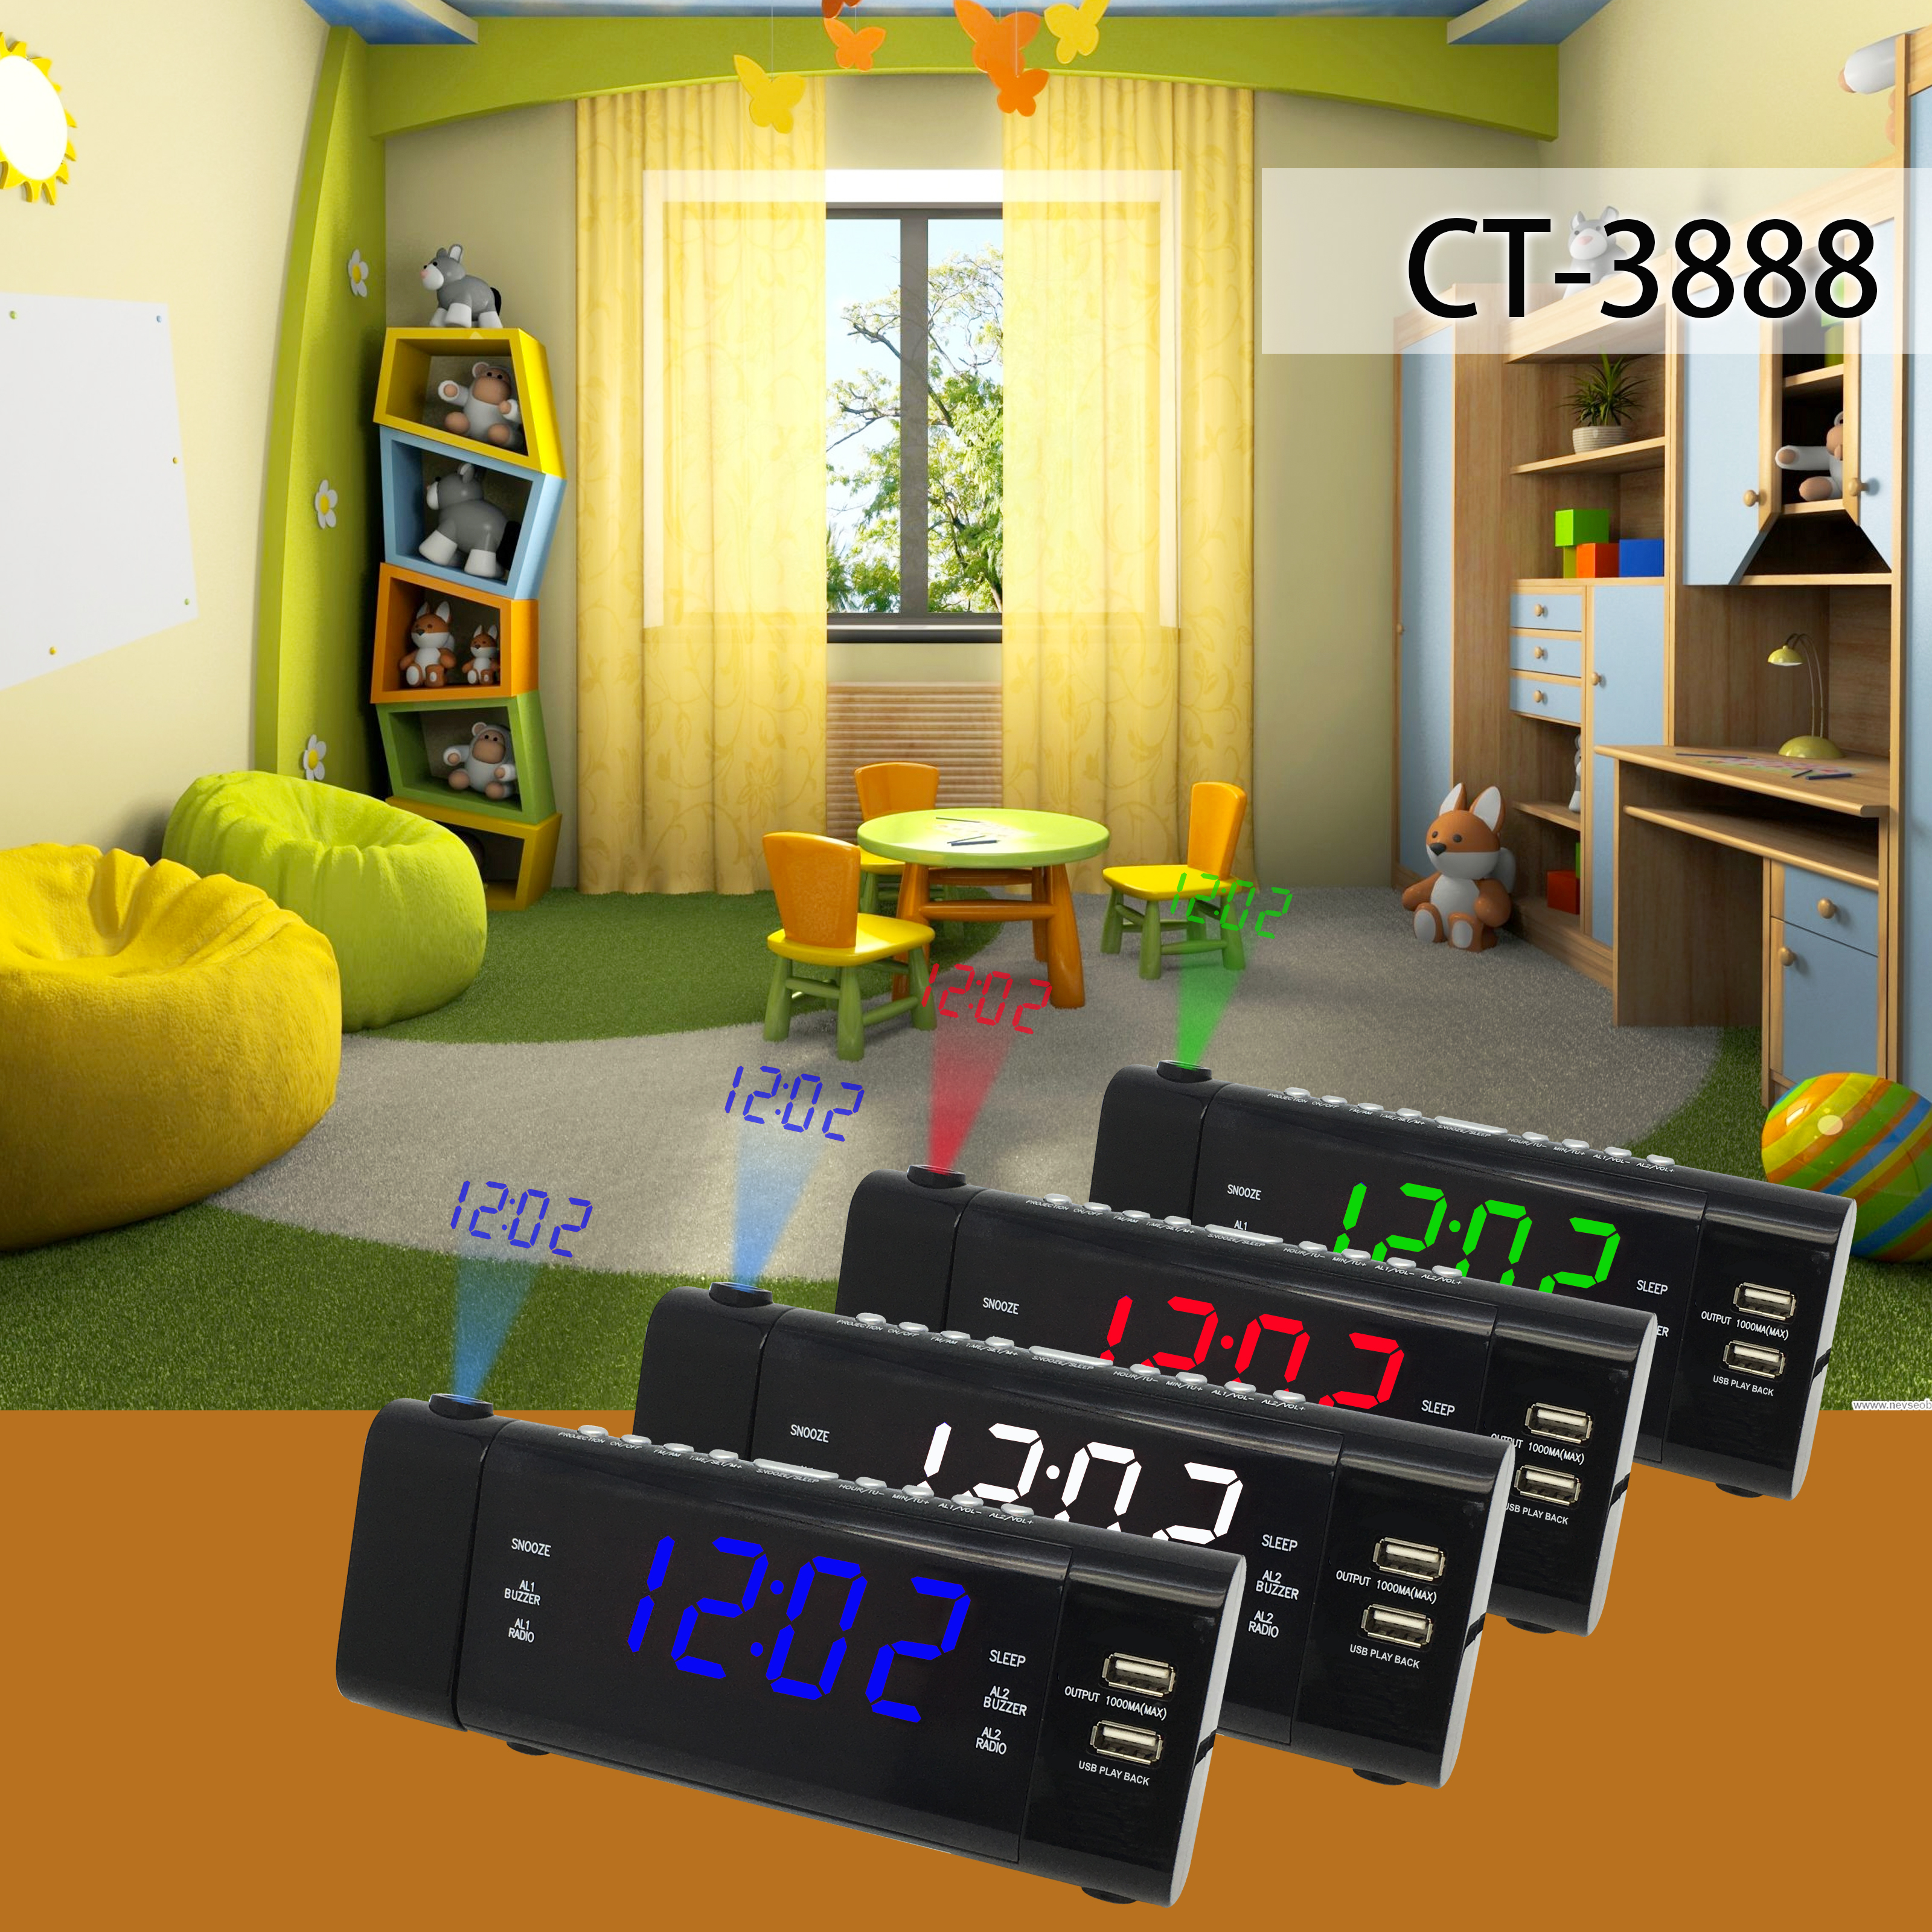 CT-3888 kids room.jpg